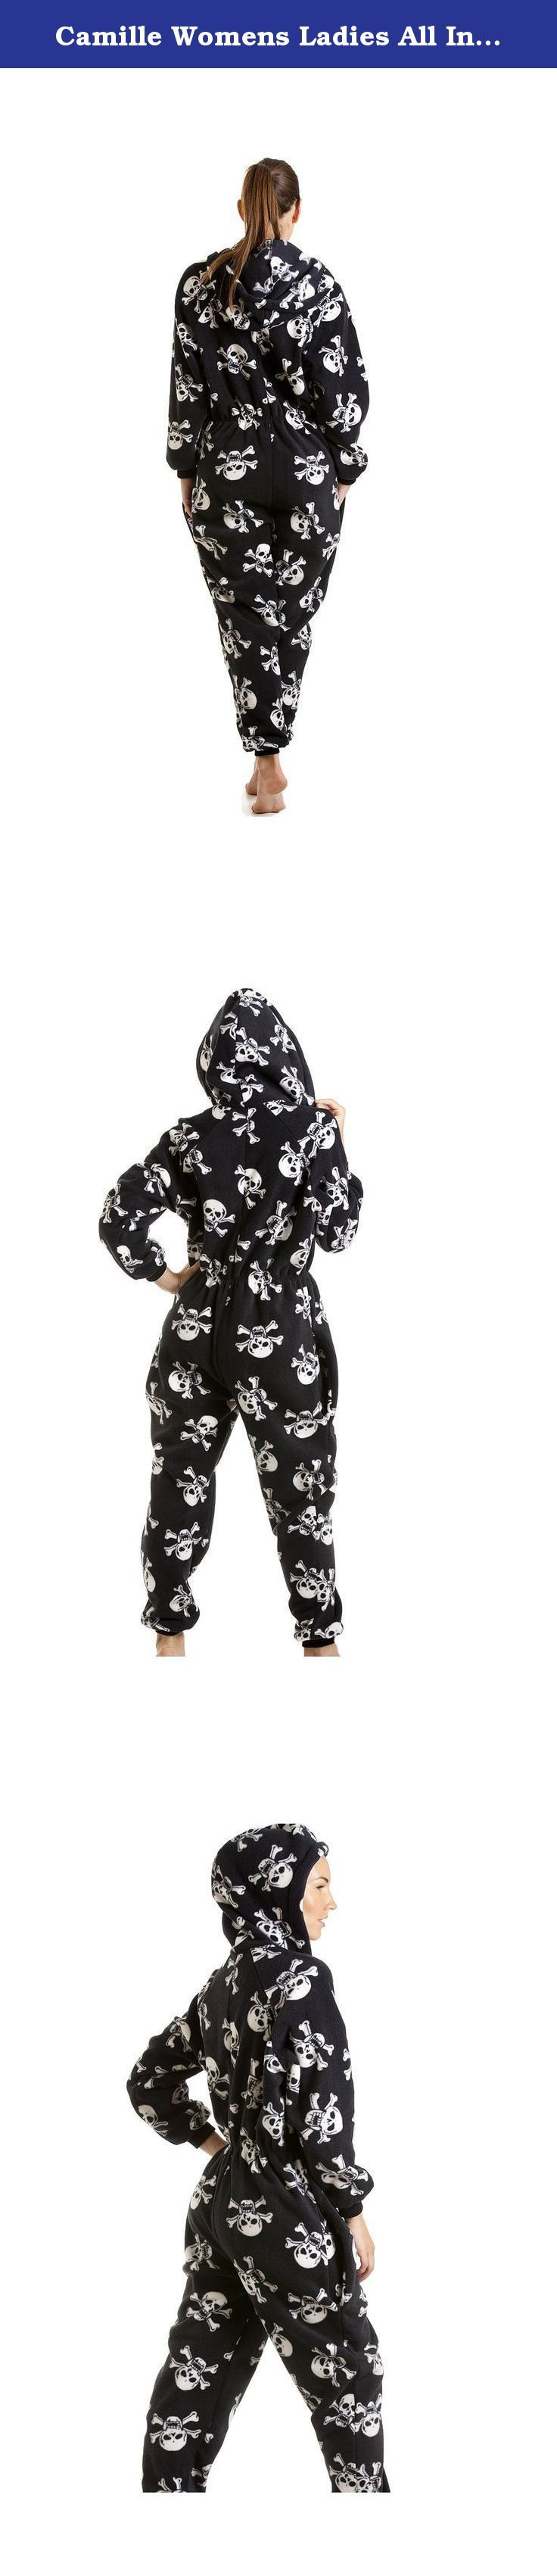 Camille Womens Ladies All In One Black And White Skull Print Hooded Fleece PJs 18/20 BLACK. This Funky Black And White Skull Print Luxury All In One Consists Of Full Length Sleeves With A Zip Up Front, This Onesie Also Has A Hood And Two Pockets And Is Footless. This Onesie Is The Height Of Comfort For Evening And Bedtime! 6/8- Inside Leg: 29 inches, Shoulder to ankle: 61 inches, Chest: 48 inches, Waist: 42 inches, Inside Arm: 19 inches. 10/12- Inside Leg: 29 inches, Shoulder to ankle: 62...